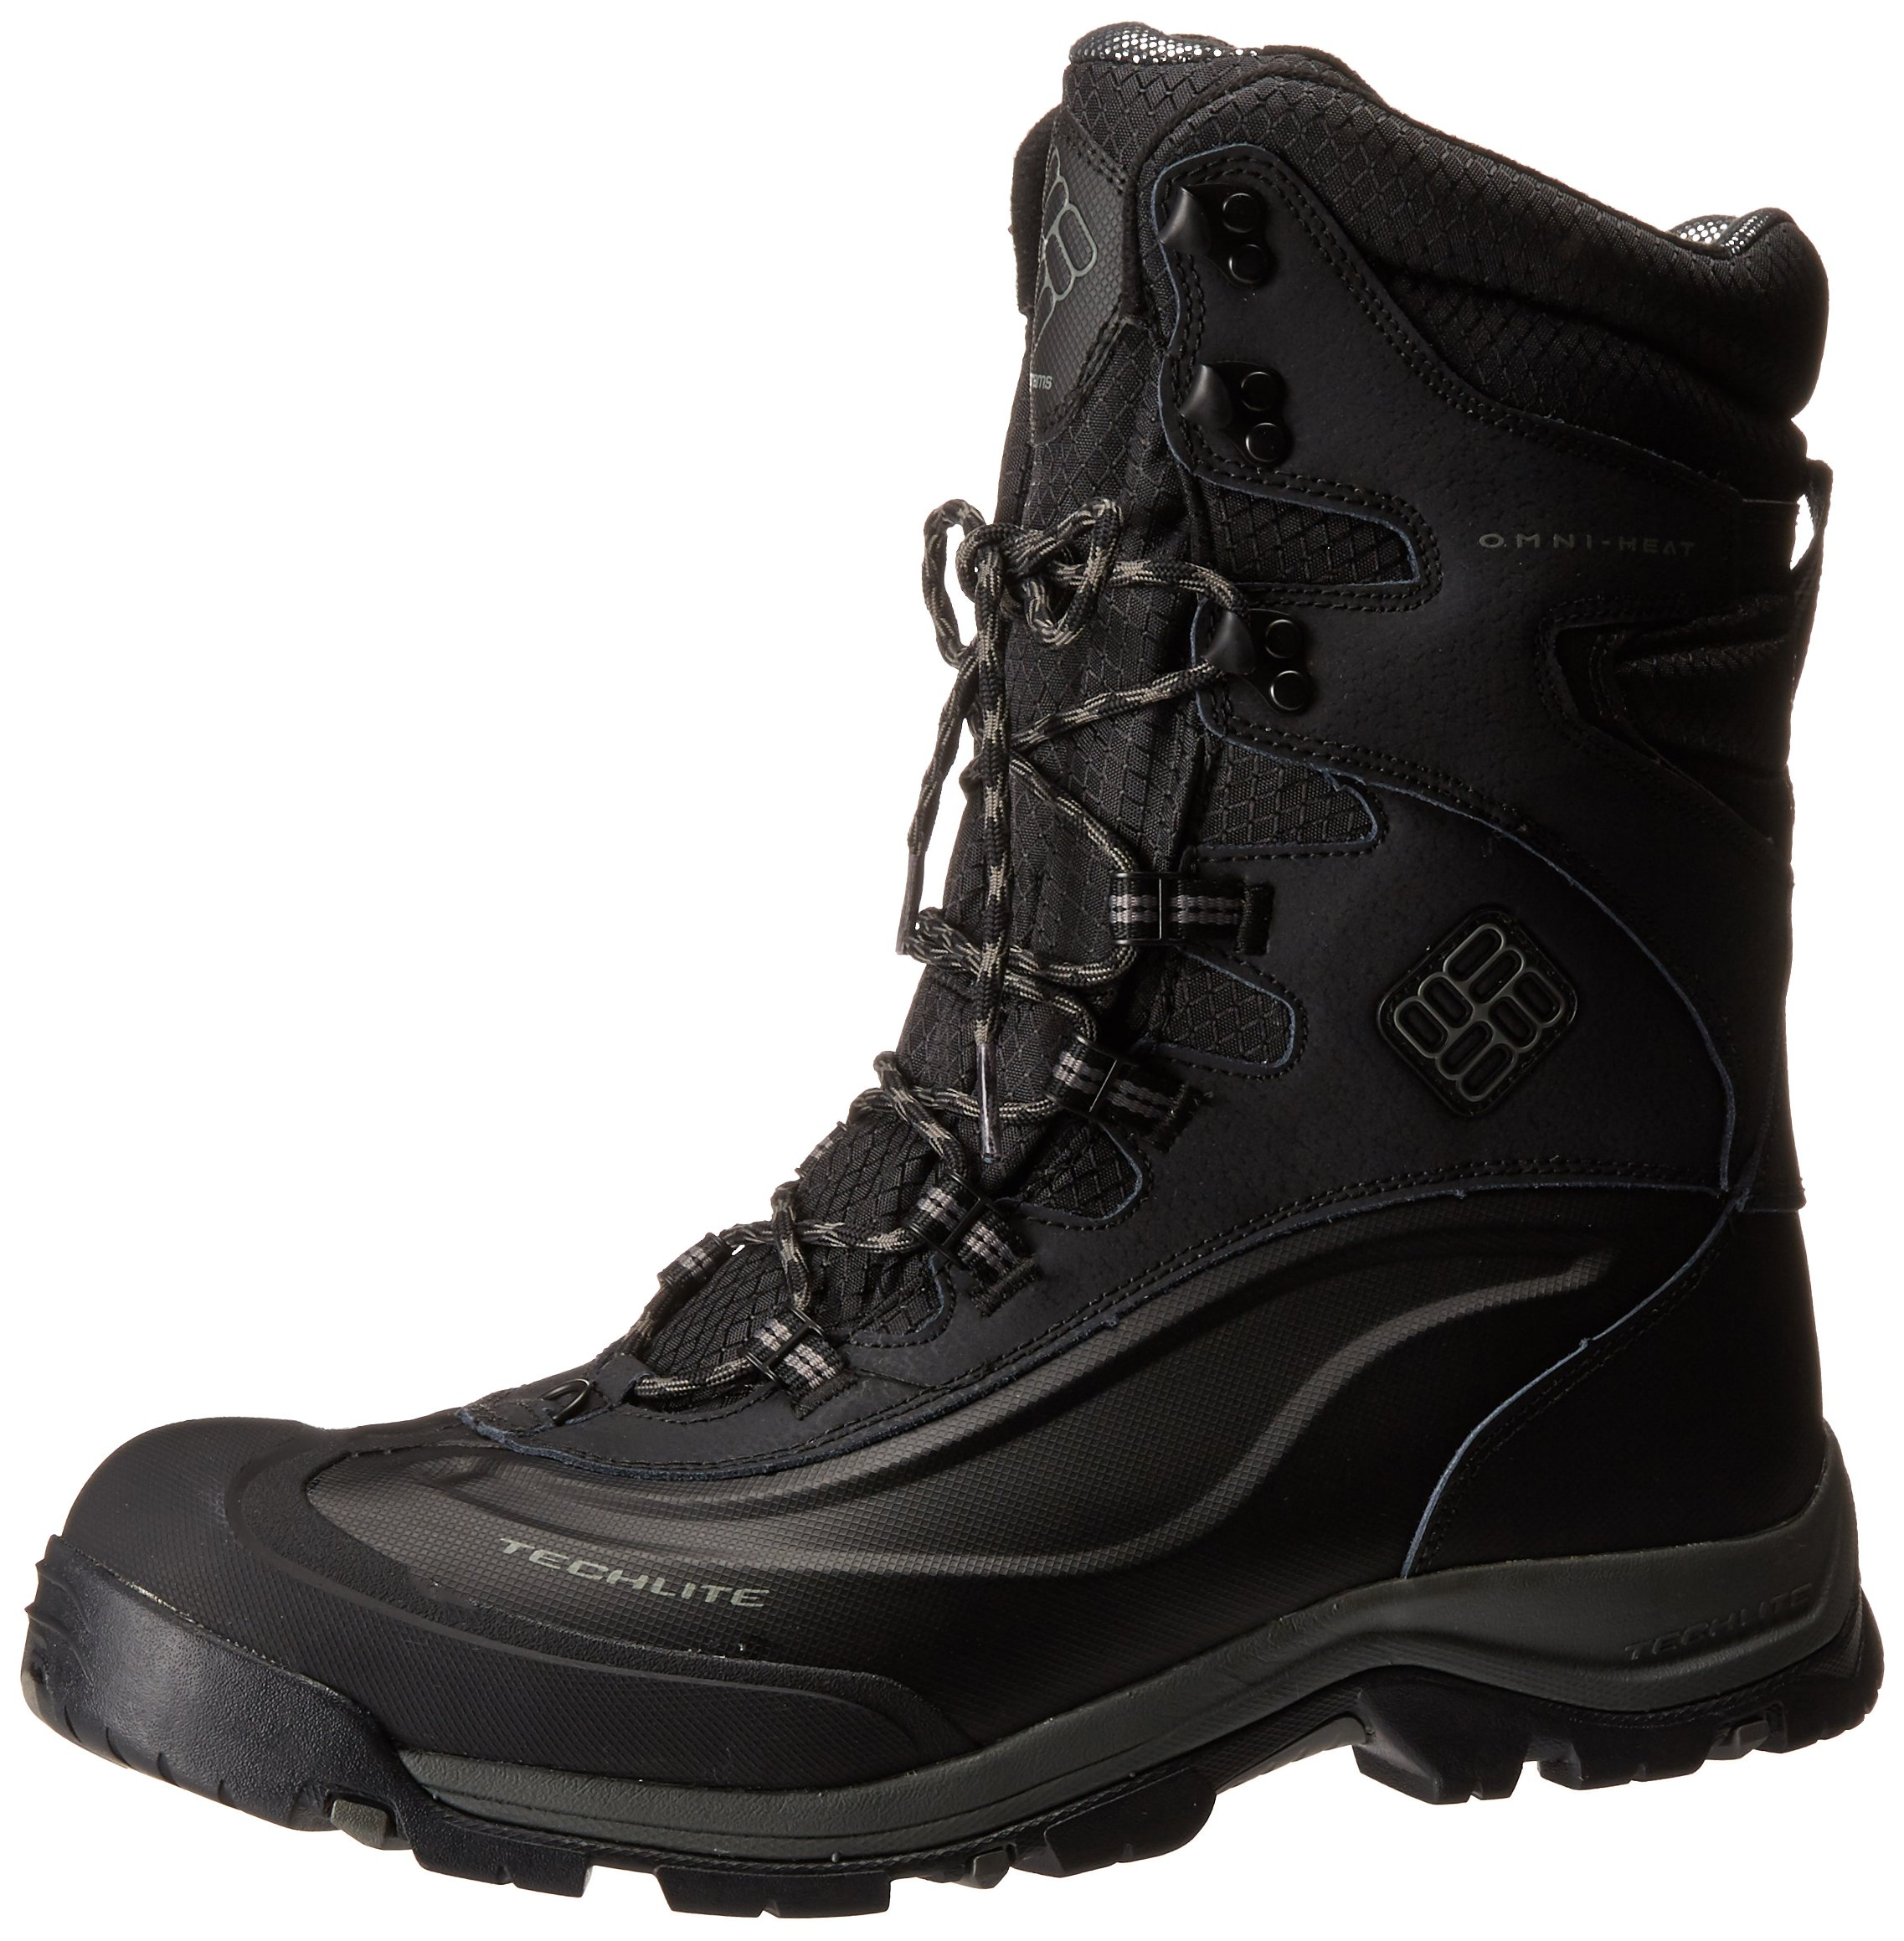 Columbia Men's Bugaboot Plus III XTM OM Cold Weather Boot, Black/Charcoal, 11 D US